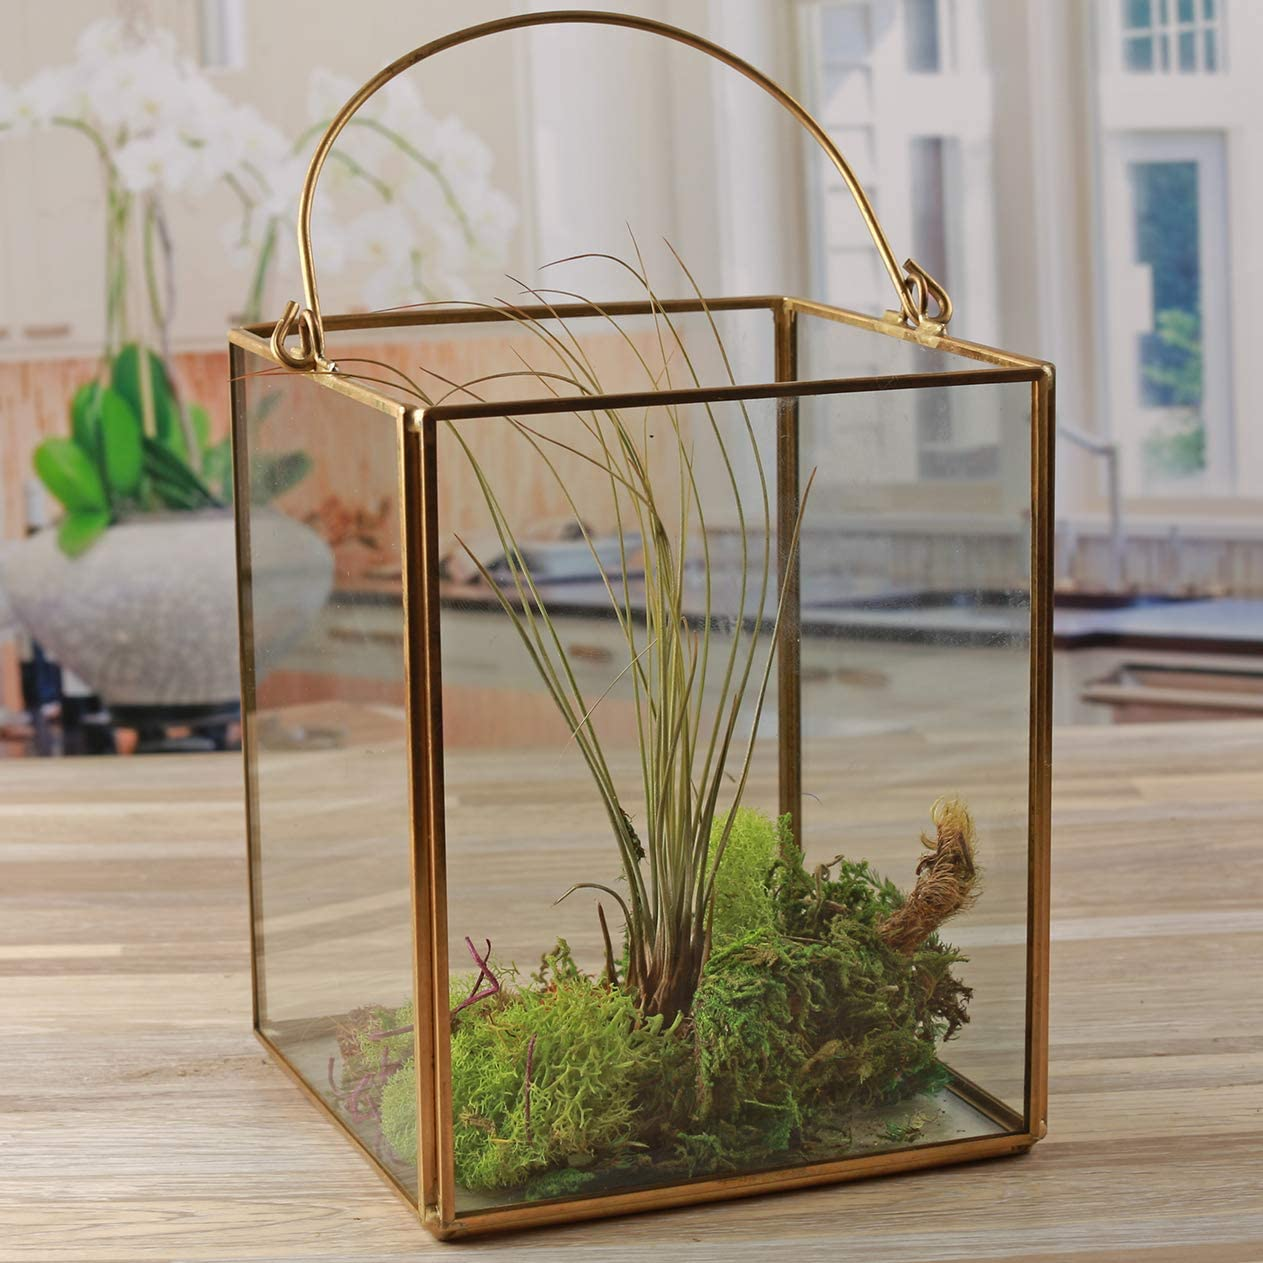 """Circleware Terraria Clear Glass Terrarium with Handle Home Plant Decor Metal Frame Design Display Flower Balcony Box and Best Selling Garden Gifts, 5.12"""" x 6.50"""", Square Gold 5.12x 6.5"""